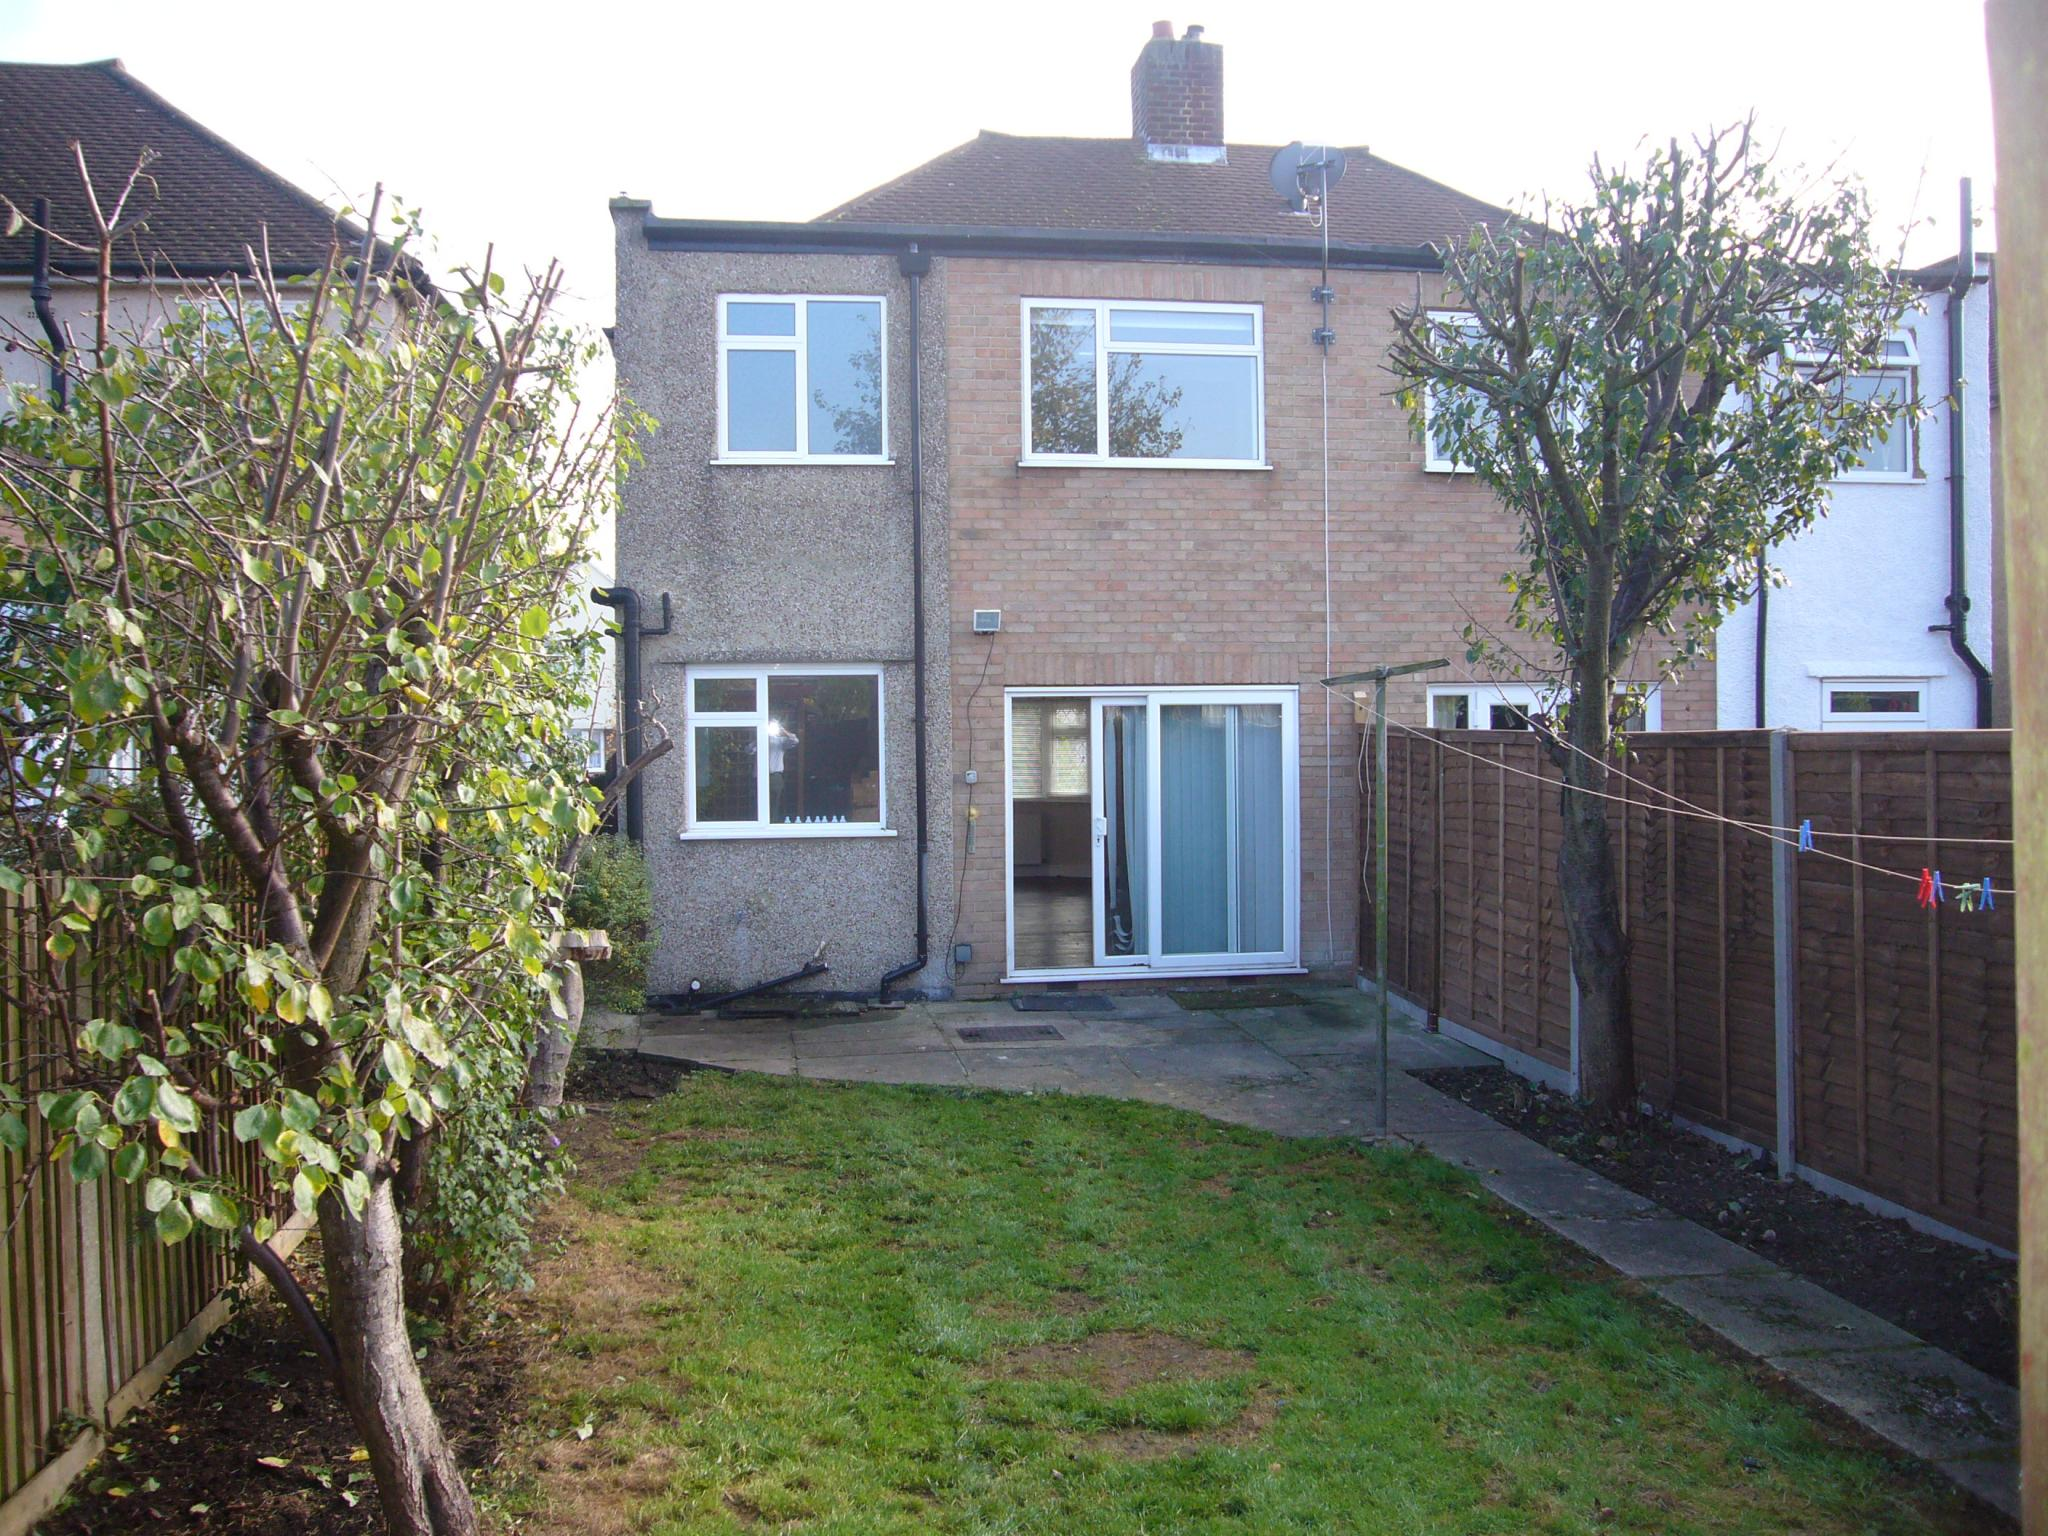 3 bedroom semi-detached house Let Agreed in Worcester Park - Photograph 3.